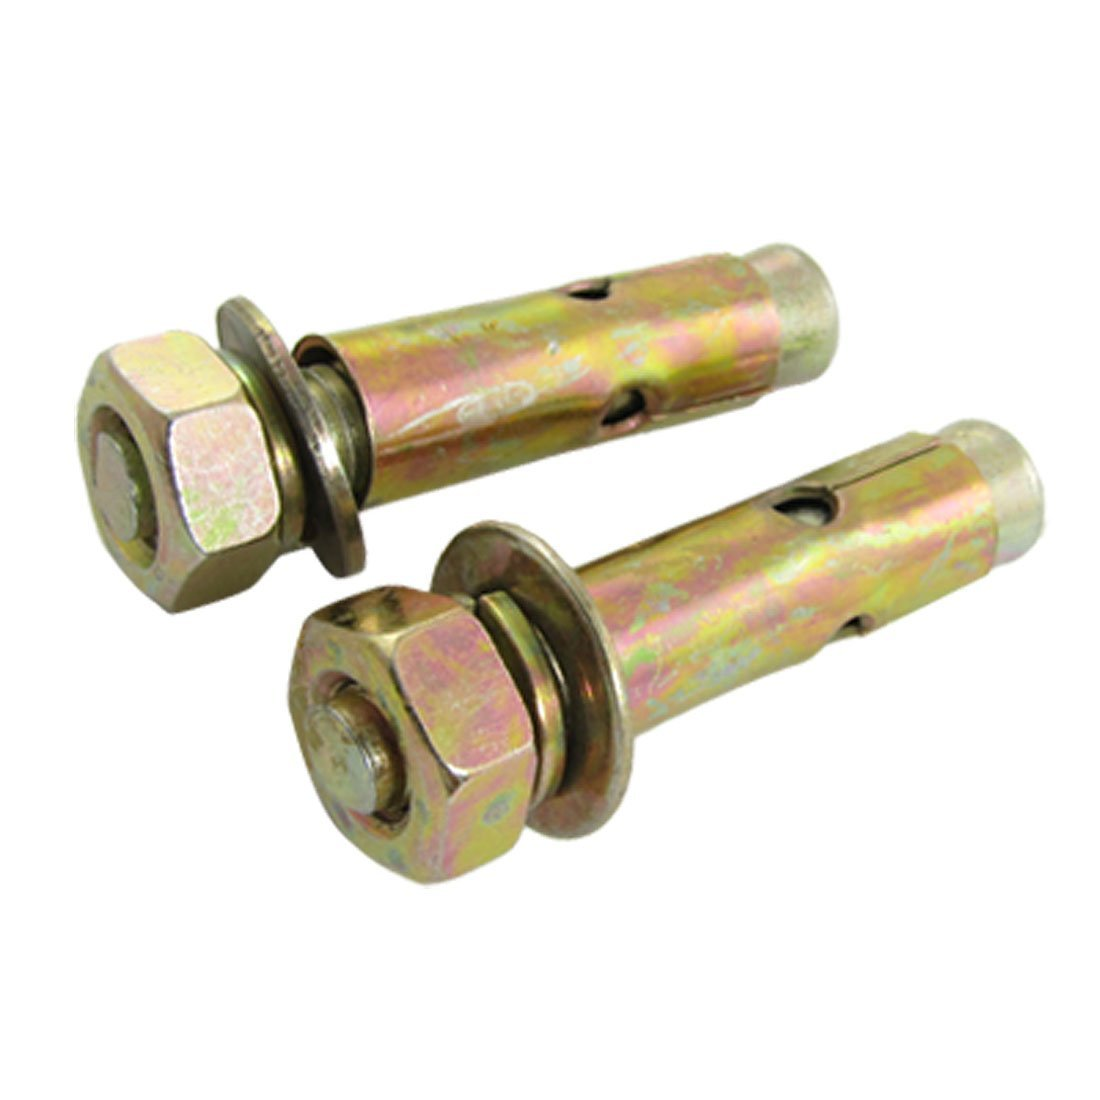 Uxcell M10 Expansion Bolt Hex Nut Sleeve Anchors (2 Piece), 60mm Dragonmarts Co. Ltd. / Uxcell a11070700ux0132